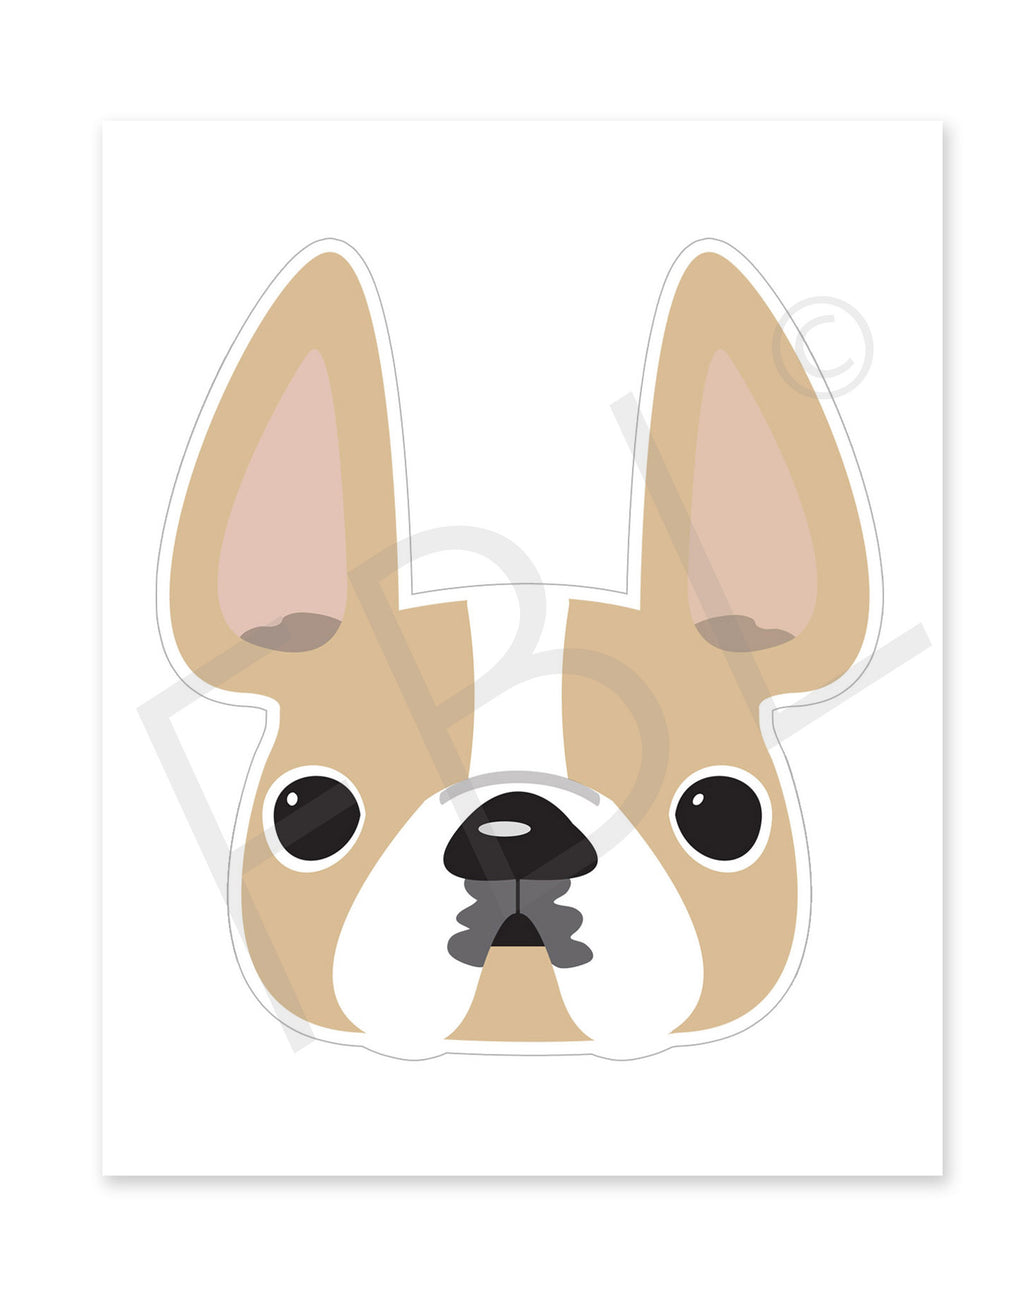 Honey Pied / Large French Bulldog Sticker - French Bulldog Love - 1